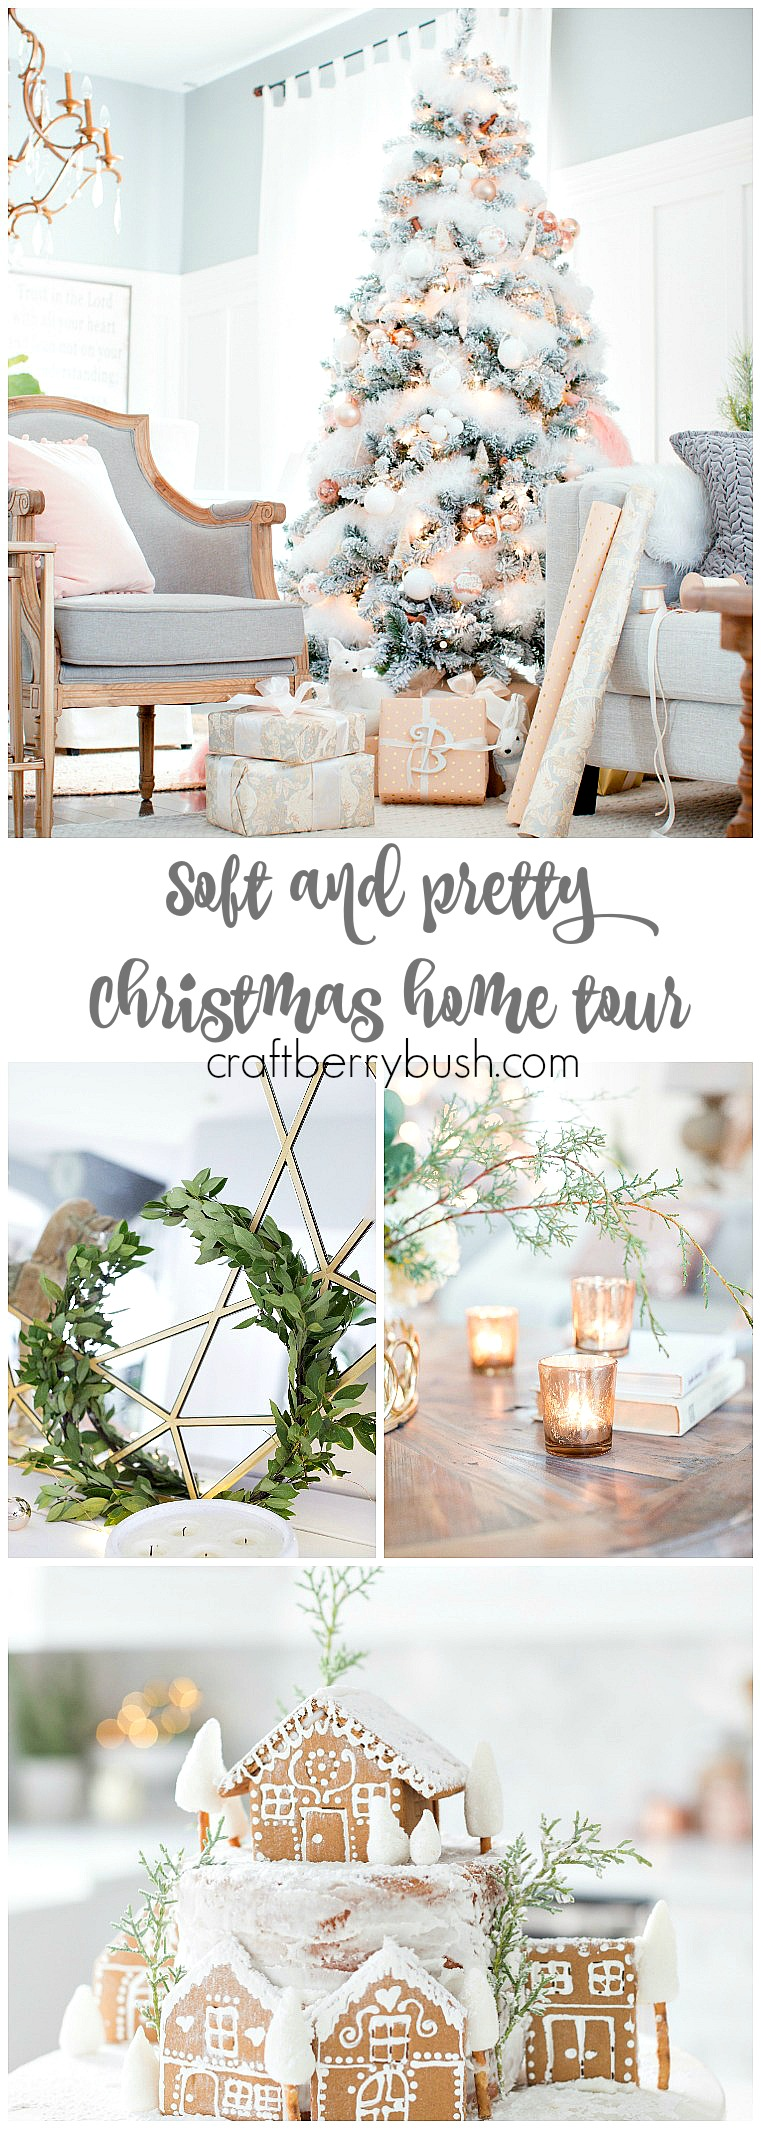 Christmashometourcraftberrybush